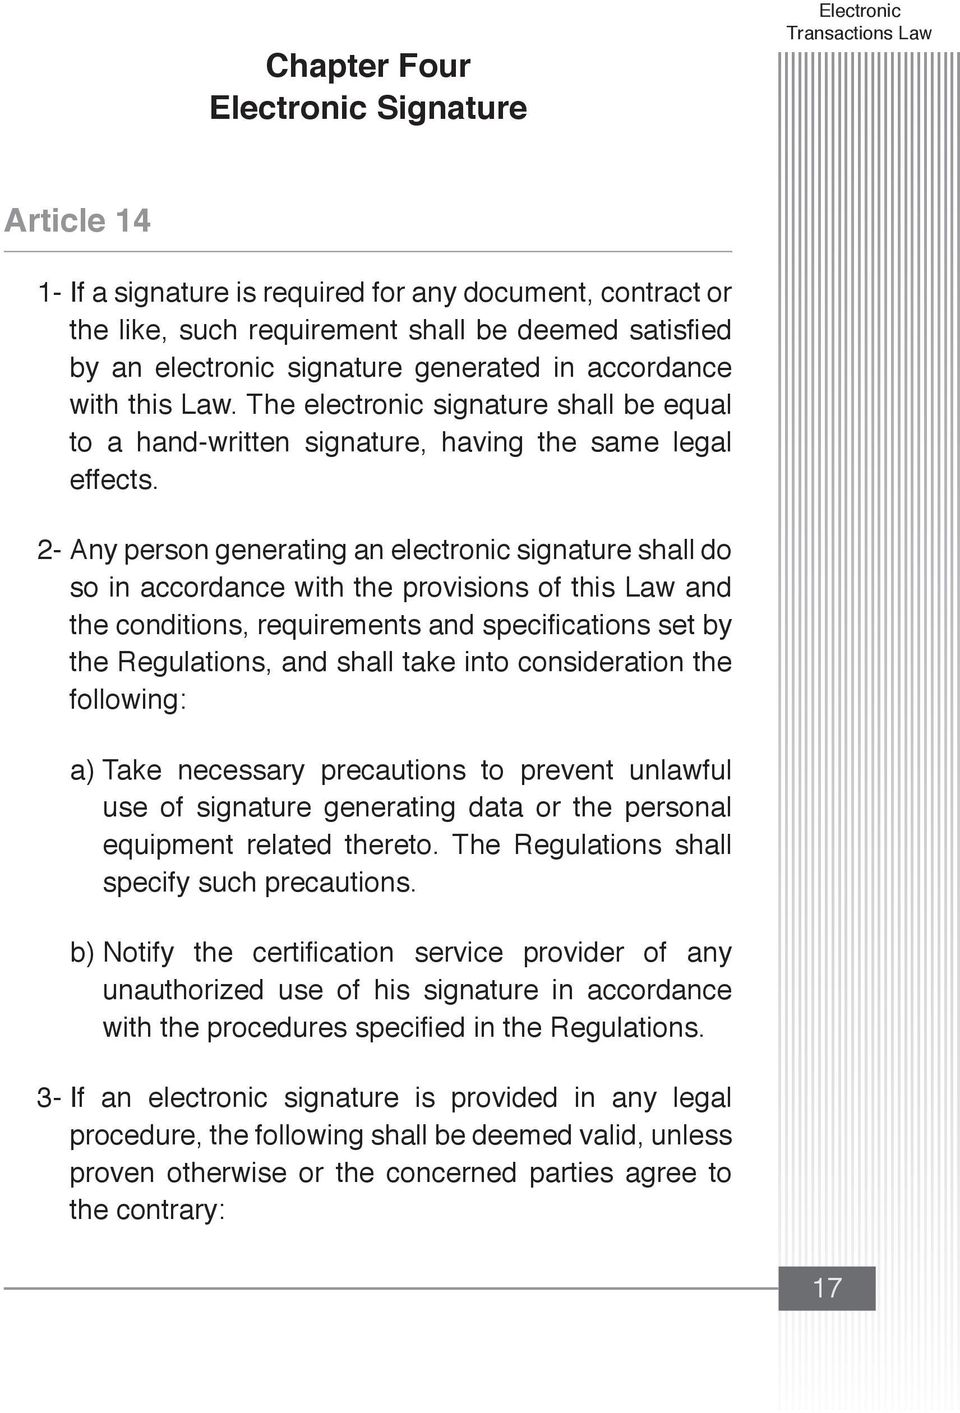 2- Any person generating an electronic signature shall do so in accordance with the provisions of this Law and the conditions, requirements and specifications set by the Regulations, and shall take